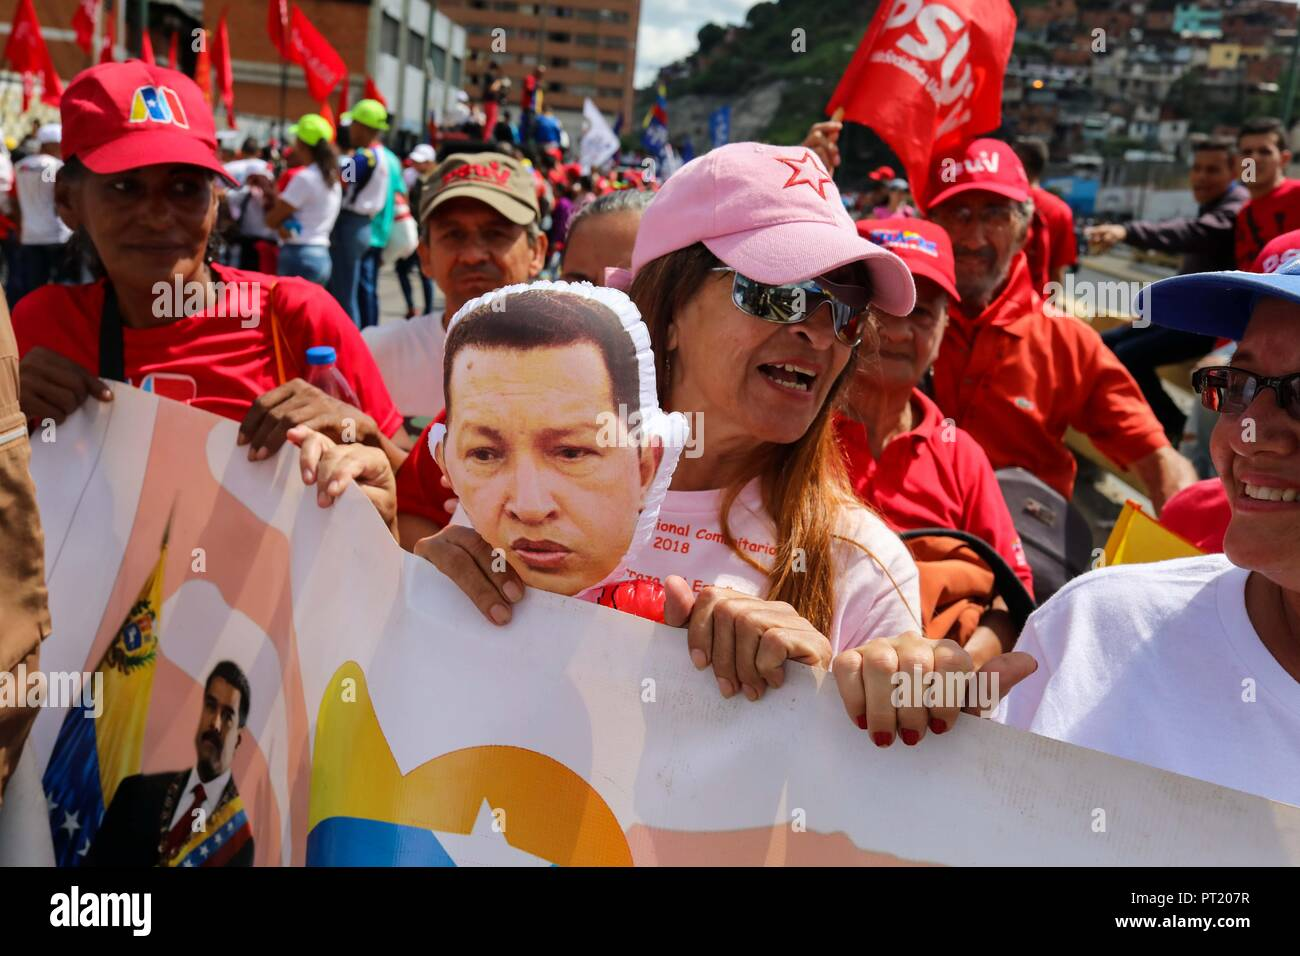 Caracas, Venezuela. 05th Oct, 2018. Officialist sympathizers march in Caracas, Venezuela, 05 October 2018. Thousands of chavists marched 'for the peace' at the capital as they assure the country is being hounded by 'agents of the imperialism' and showed their support for President Nicolas Maduro. Credit: Cristian Hernandez/EFE/Alamy Live News - Stock Image